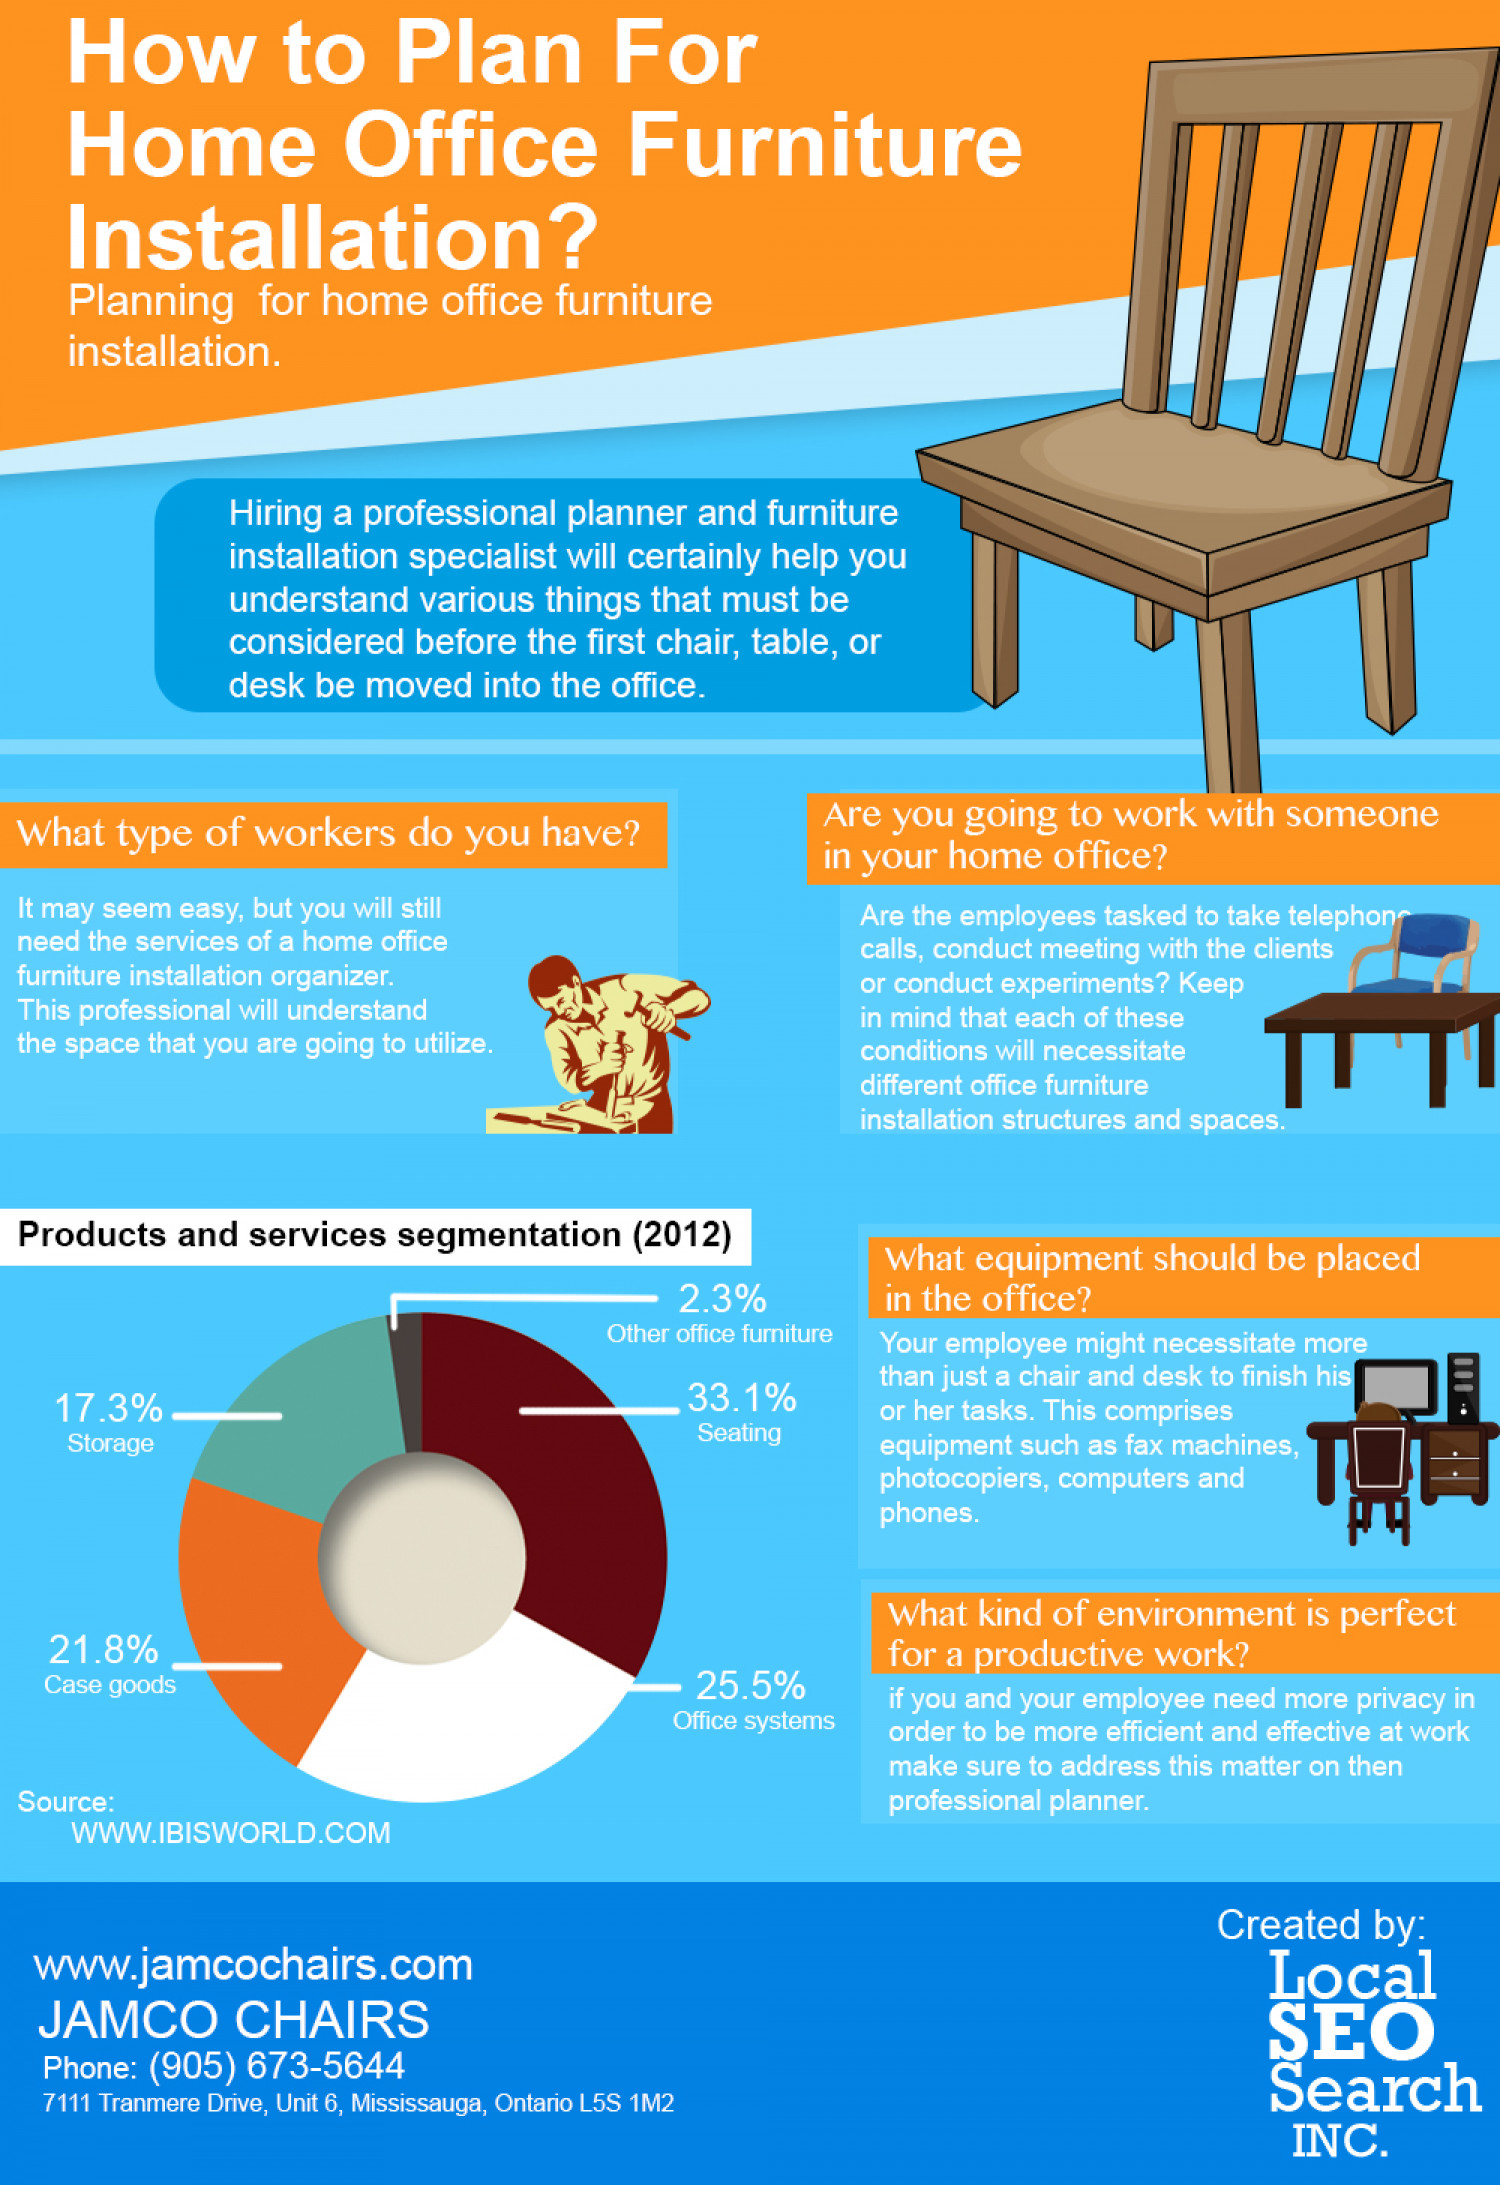 How to Plan for Home Office Furniture Installation Infographic